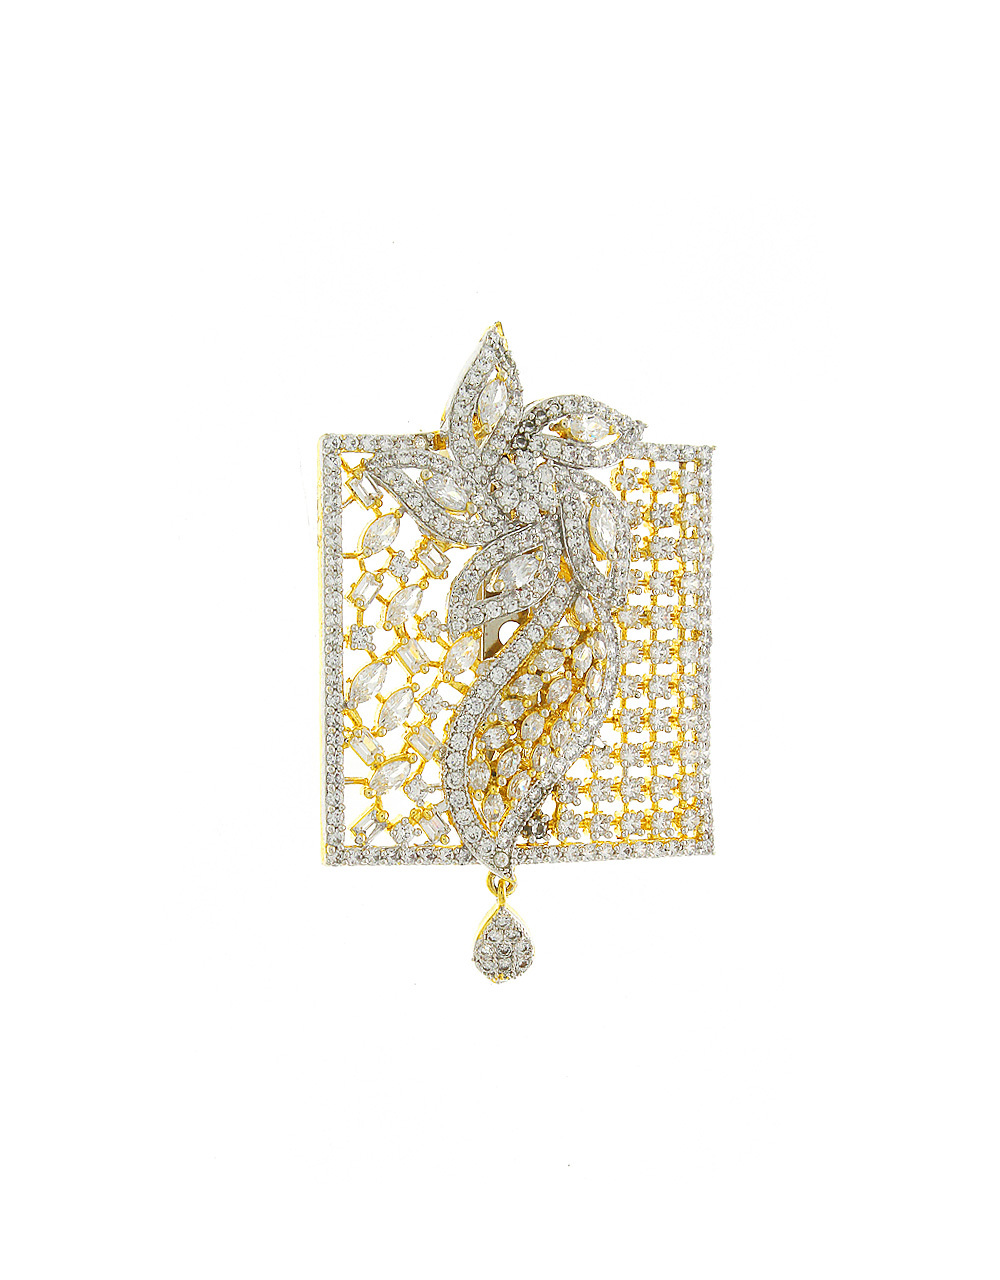 Gold Finish Brooch Studded With American Diamonds Groom Brooch